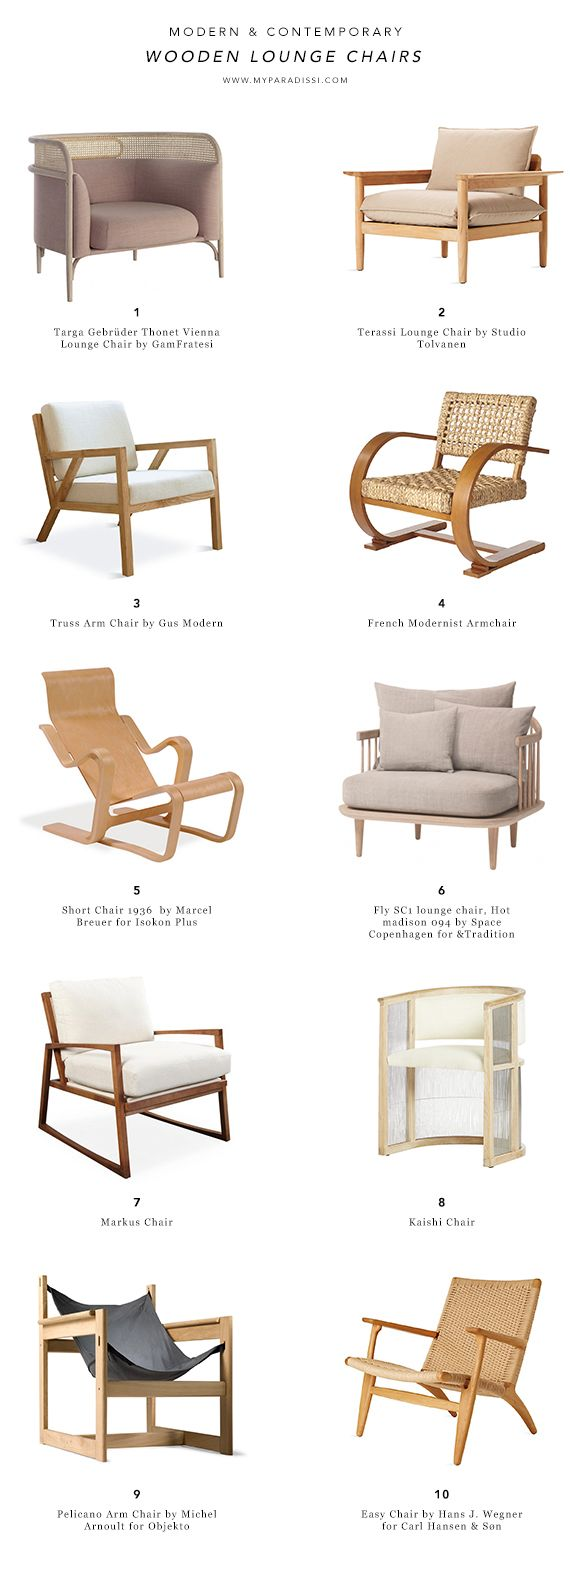 Modern and contemporary wooden lounge chairs